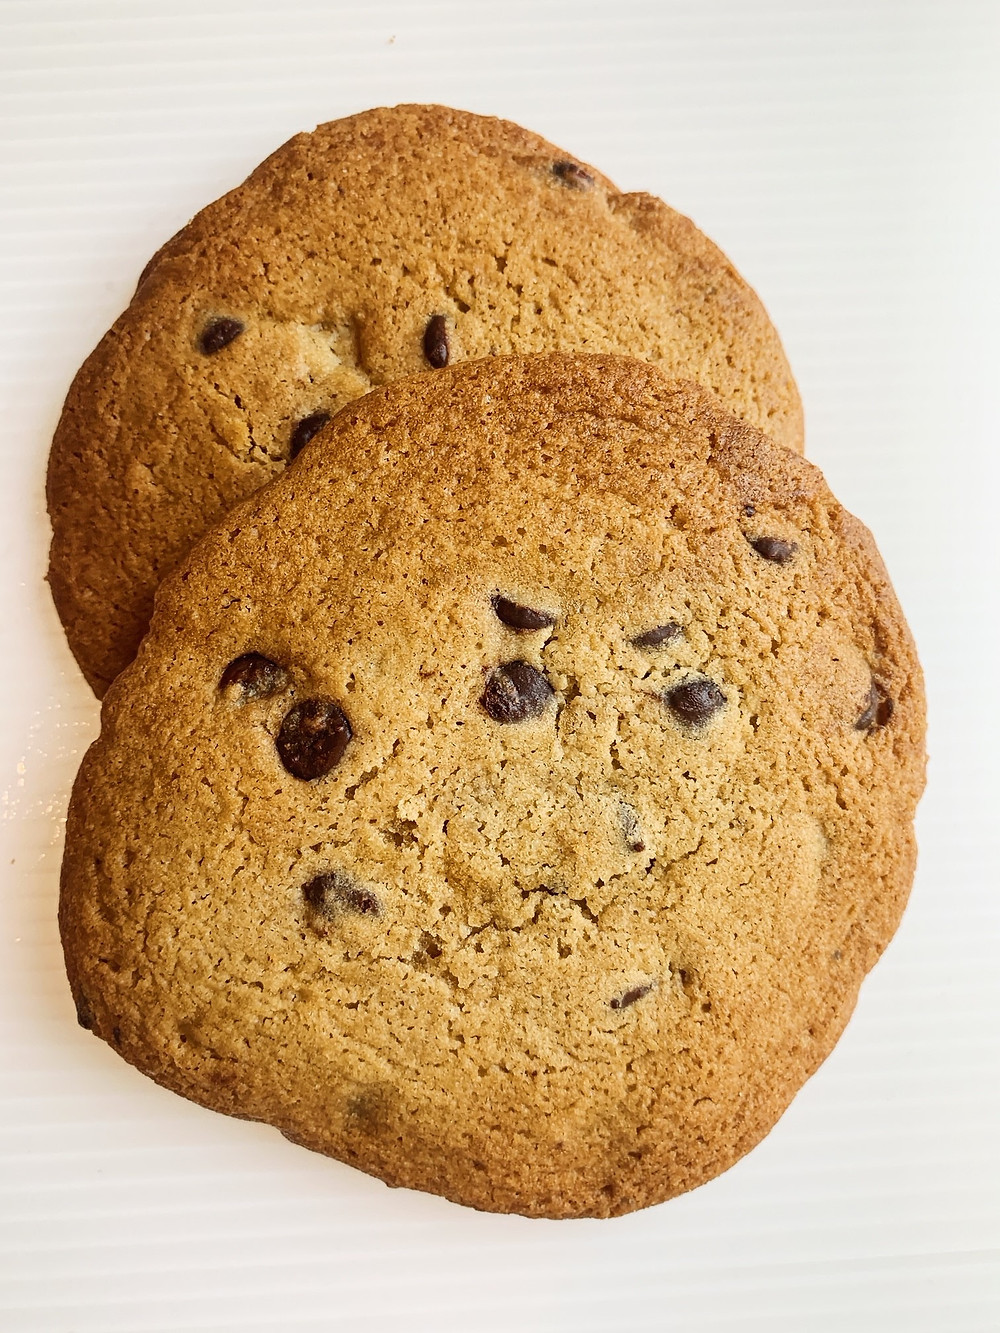 Chocolate Chip Cookies from Three Brothers Bakery